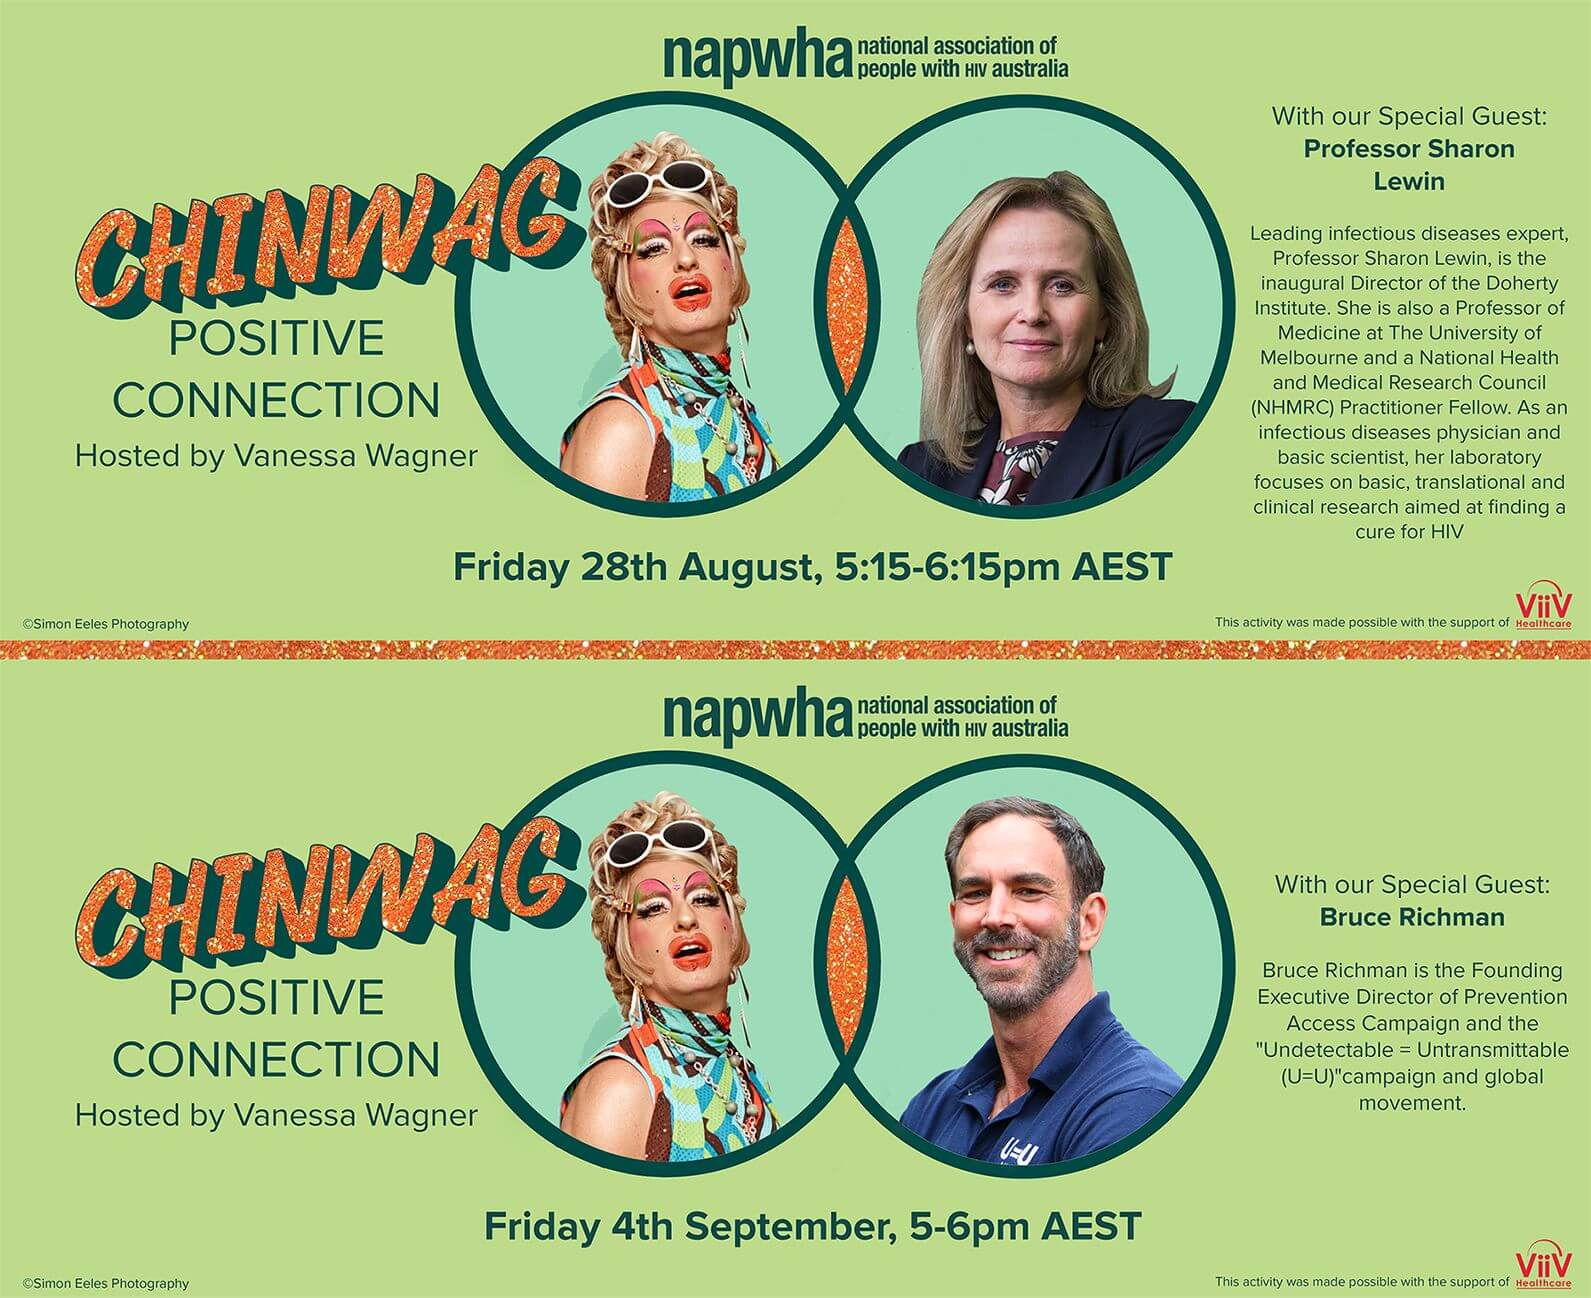 Professor Sharon Lewin and Bruce Richman join Chinwag: Positive Connection